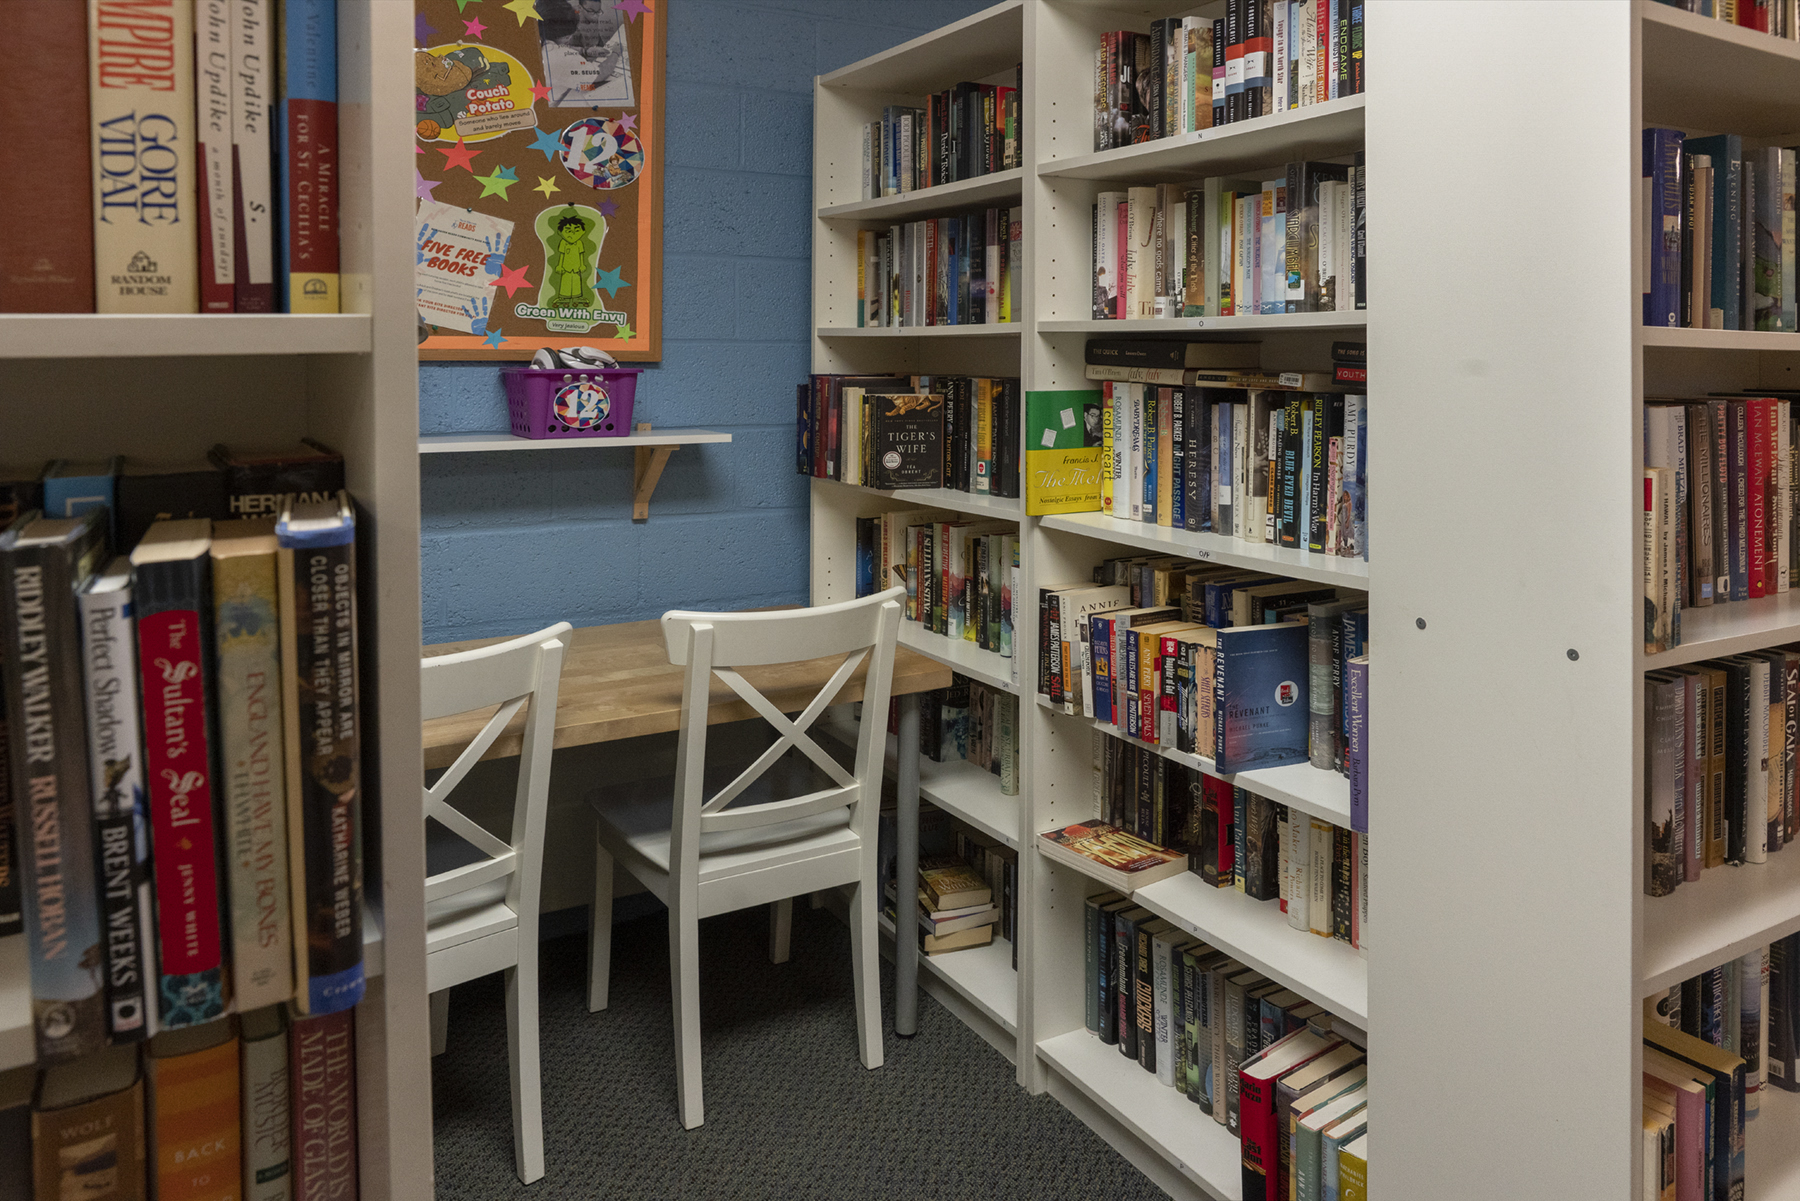 A tutoring station surrounded by bookshelves